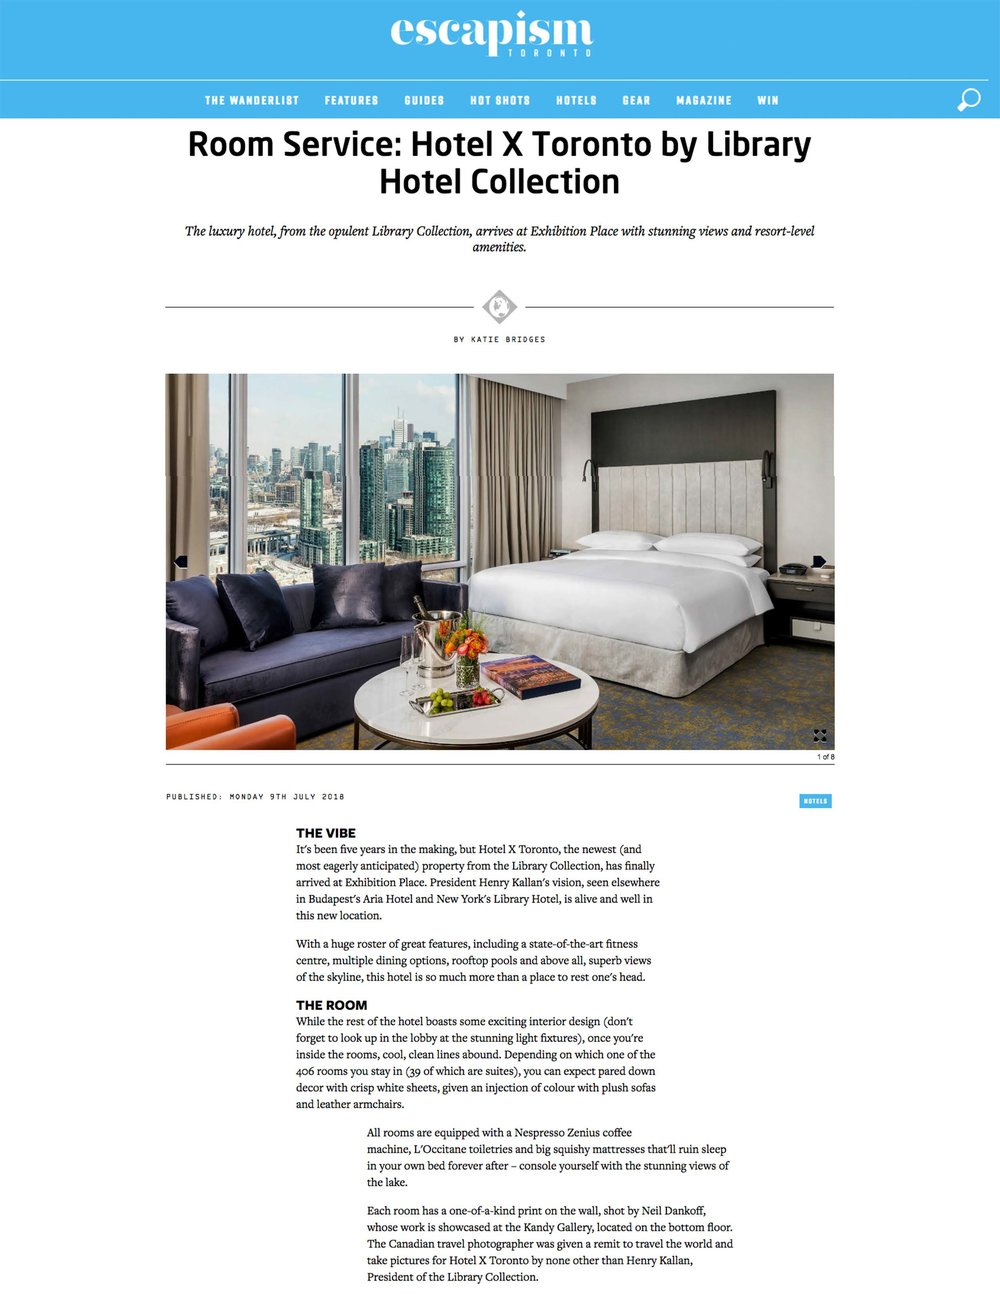 Room Service: Hotel X Toronto by Library Hotel Collection<br>ESCAPISM TORONTO